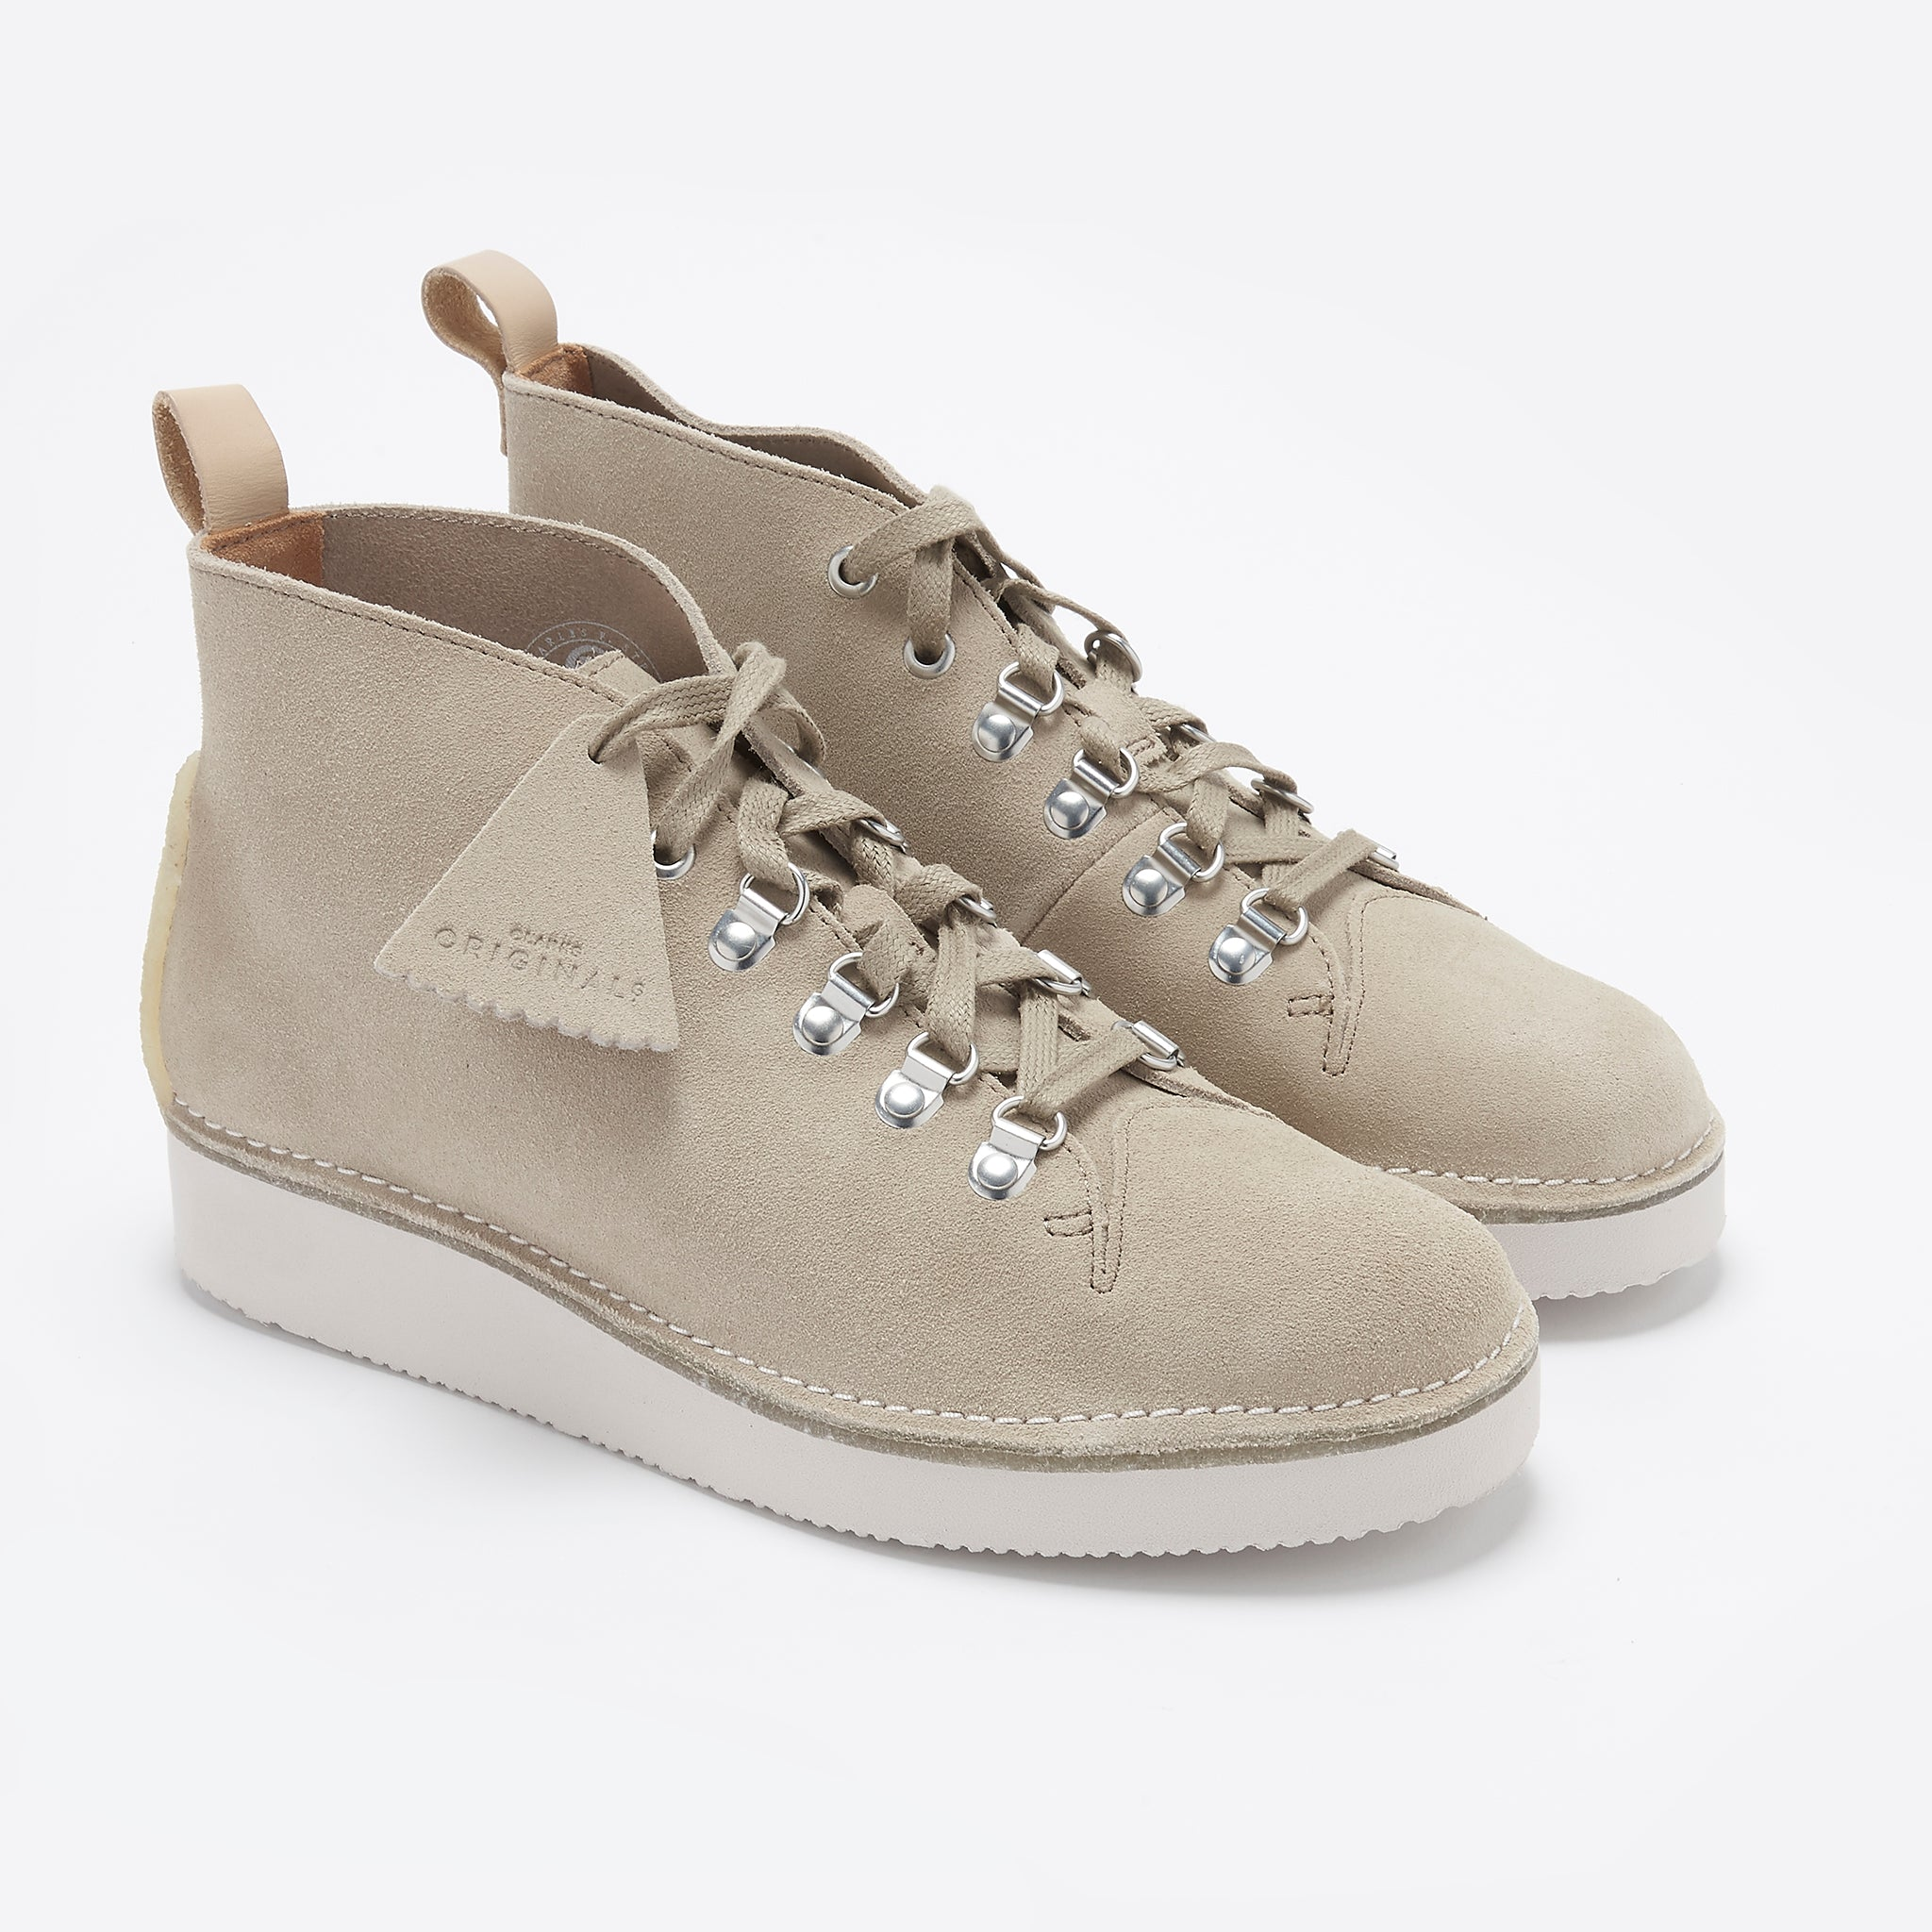 Clarks Originals Nala Hike Boot in Sand Suede